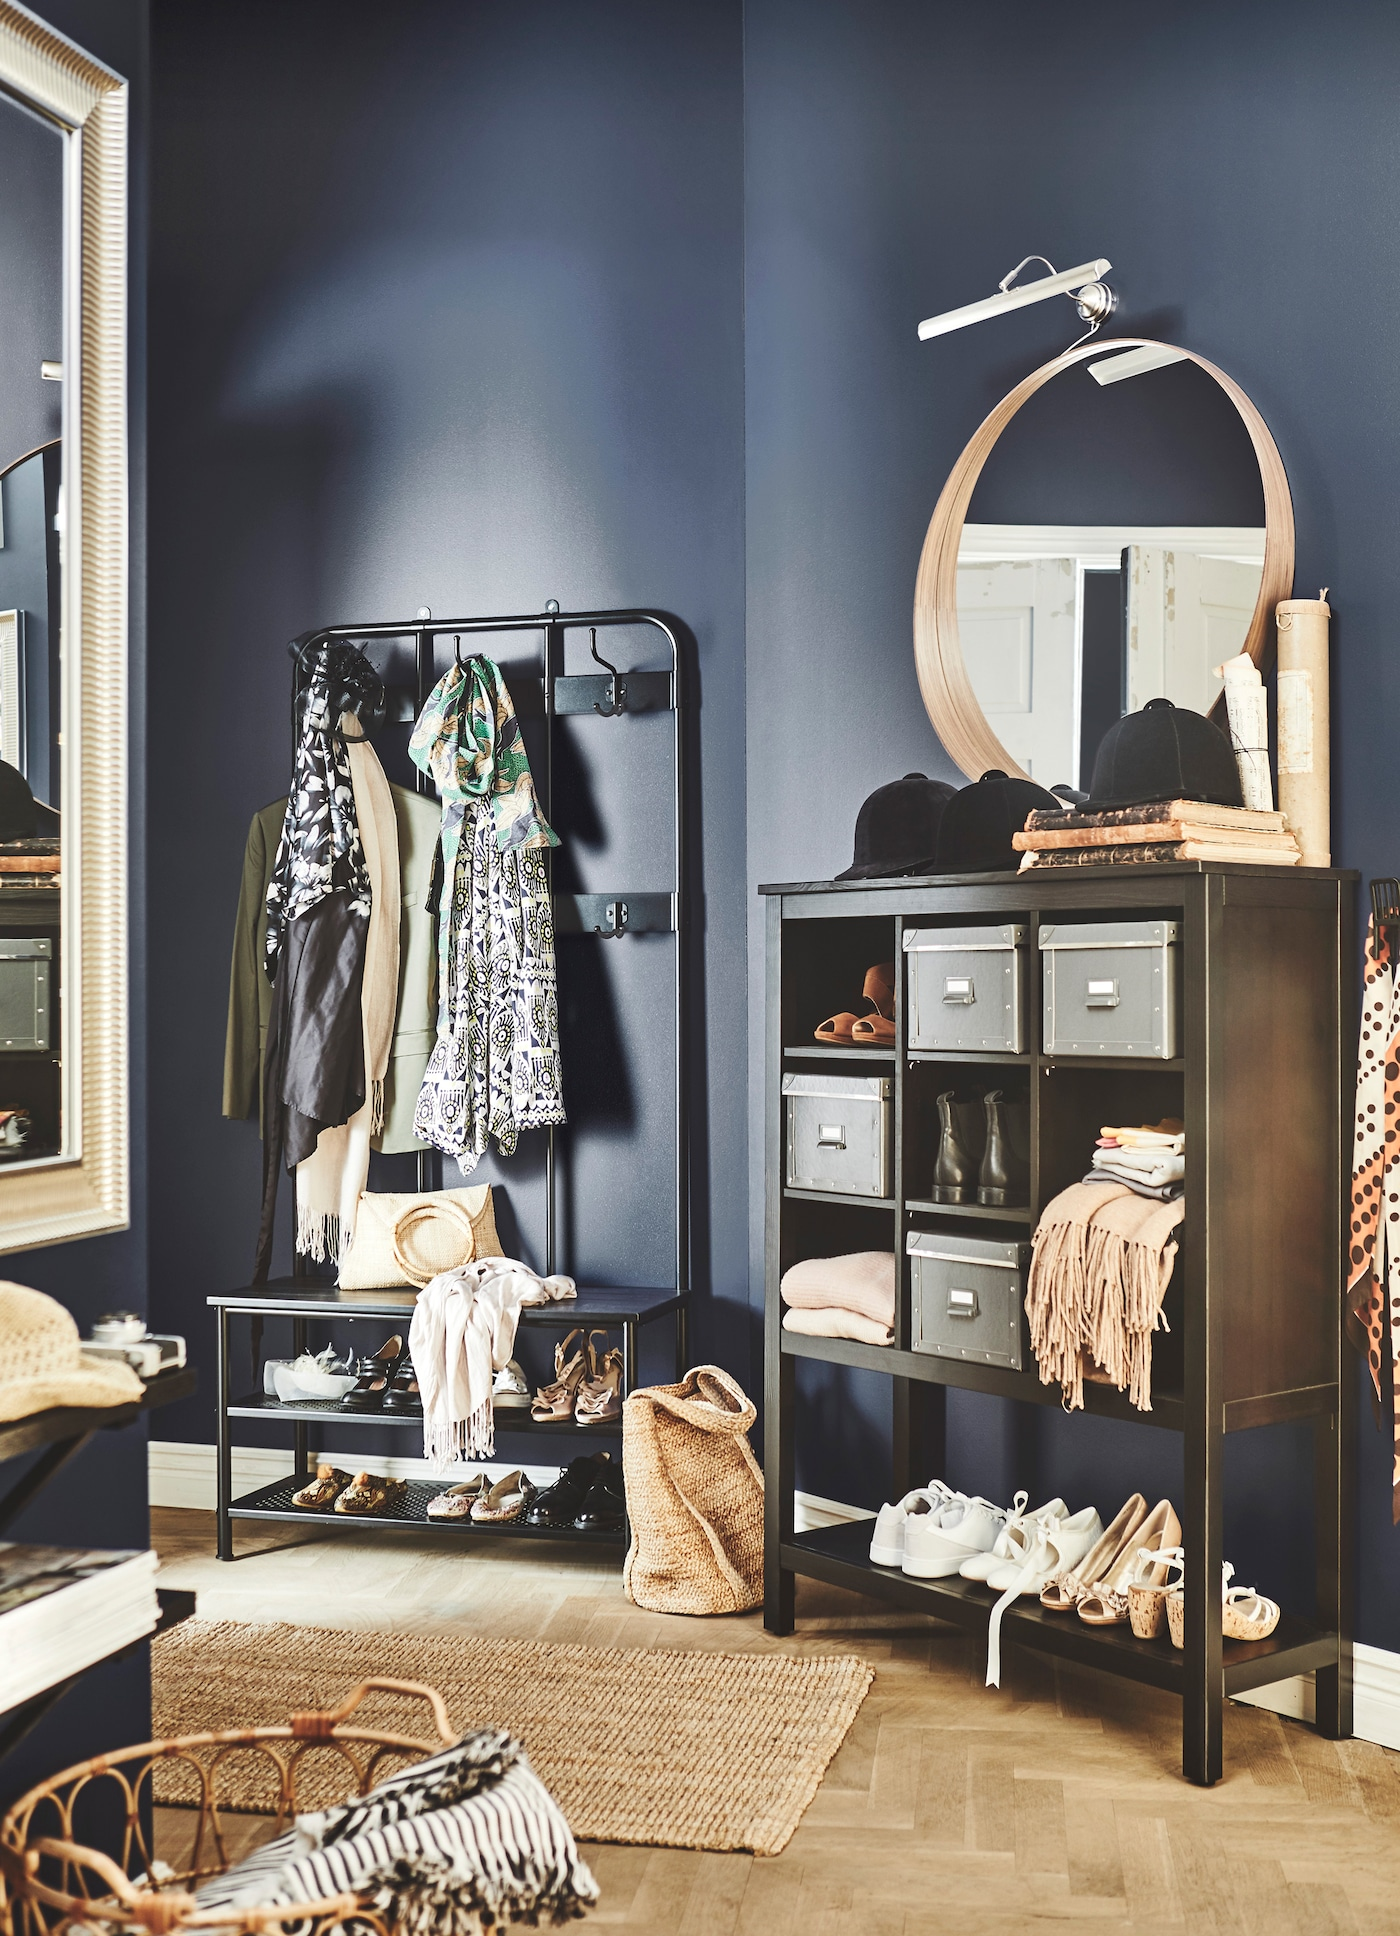 Organise your hallway with IKEA HEMNES storage unit and PINNIG coat rack. This duo keeps your items and shoes in place with an integrated bench and shoe storage shelves.